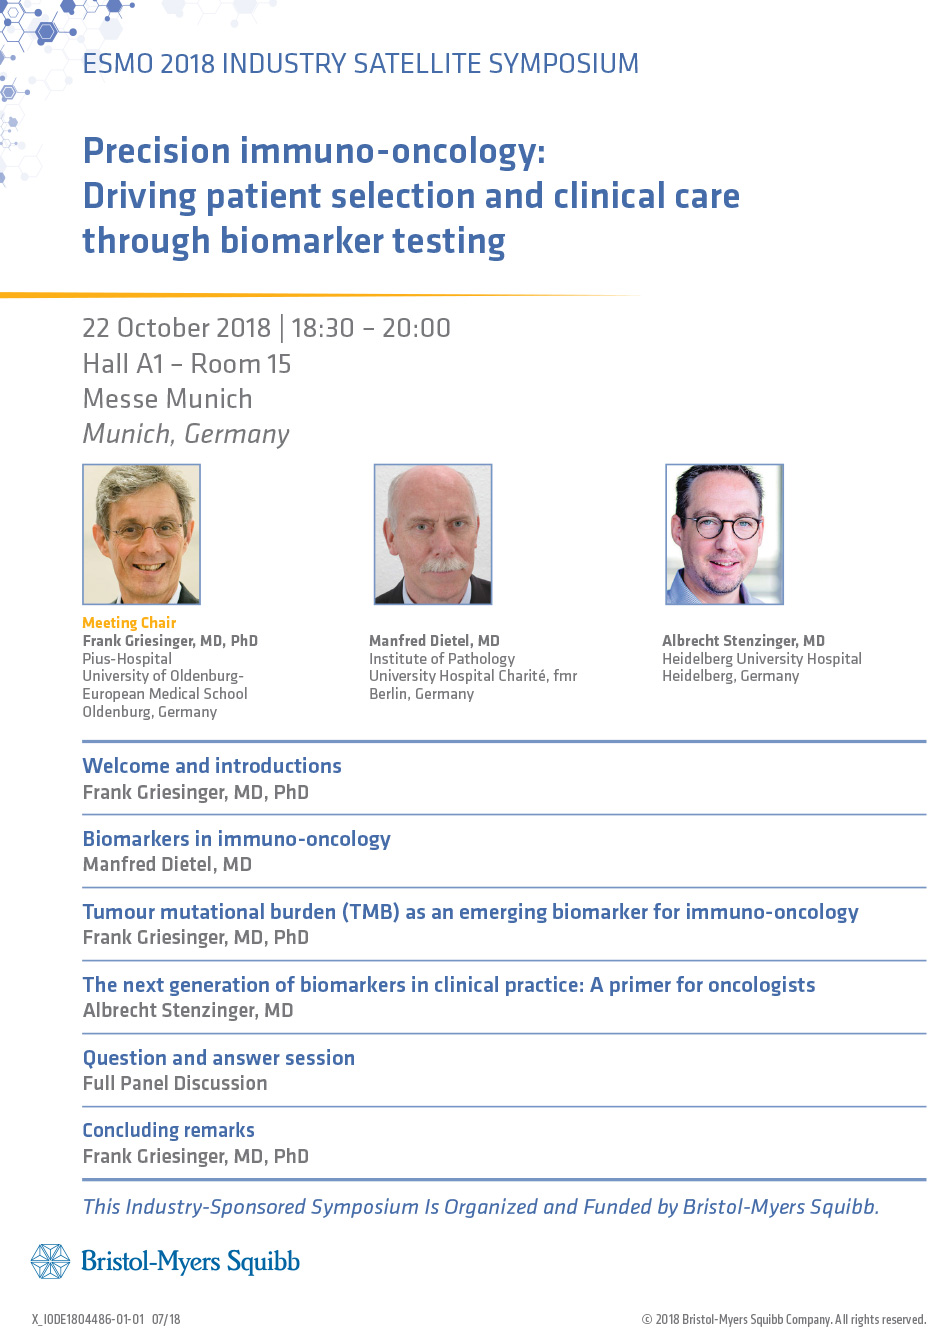 Precision Immuno-Oncology: Driving Patient Selection and Clinical Care Through Biomarker Testing